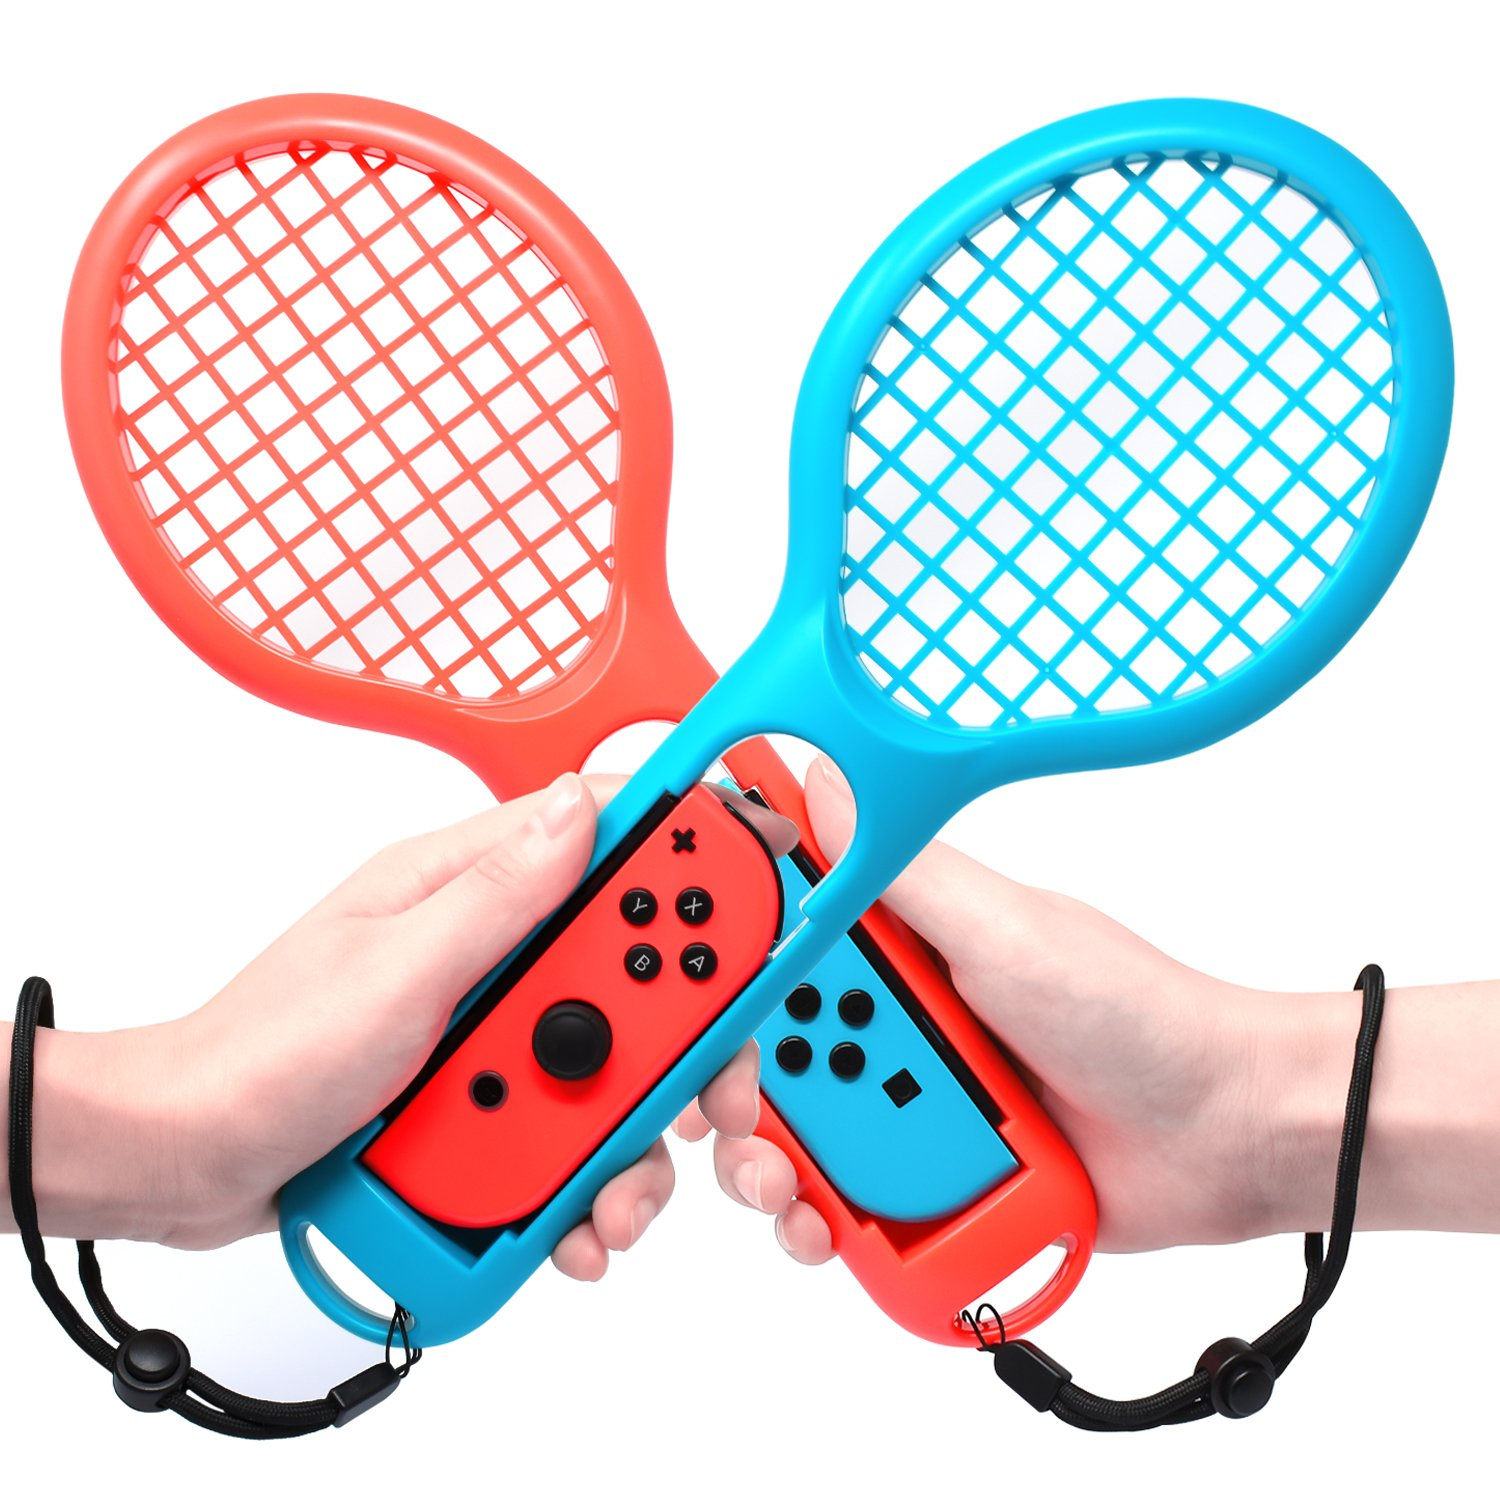 Tennis Racket for Nintendo Switch Joy-con Controllers, Twin Pack Tennis Racket for Mario Tennis Aces Game, Nintendo Switch Accessories (Blue and Red) by MENEEA